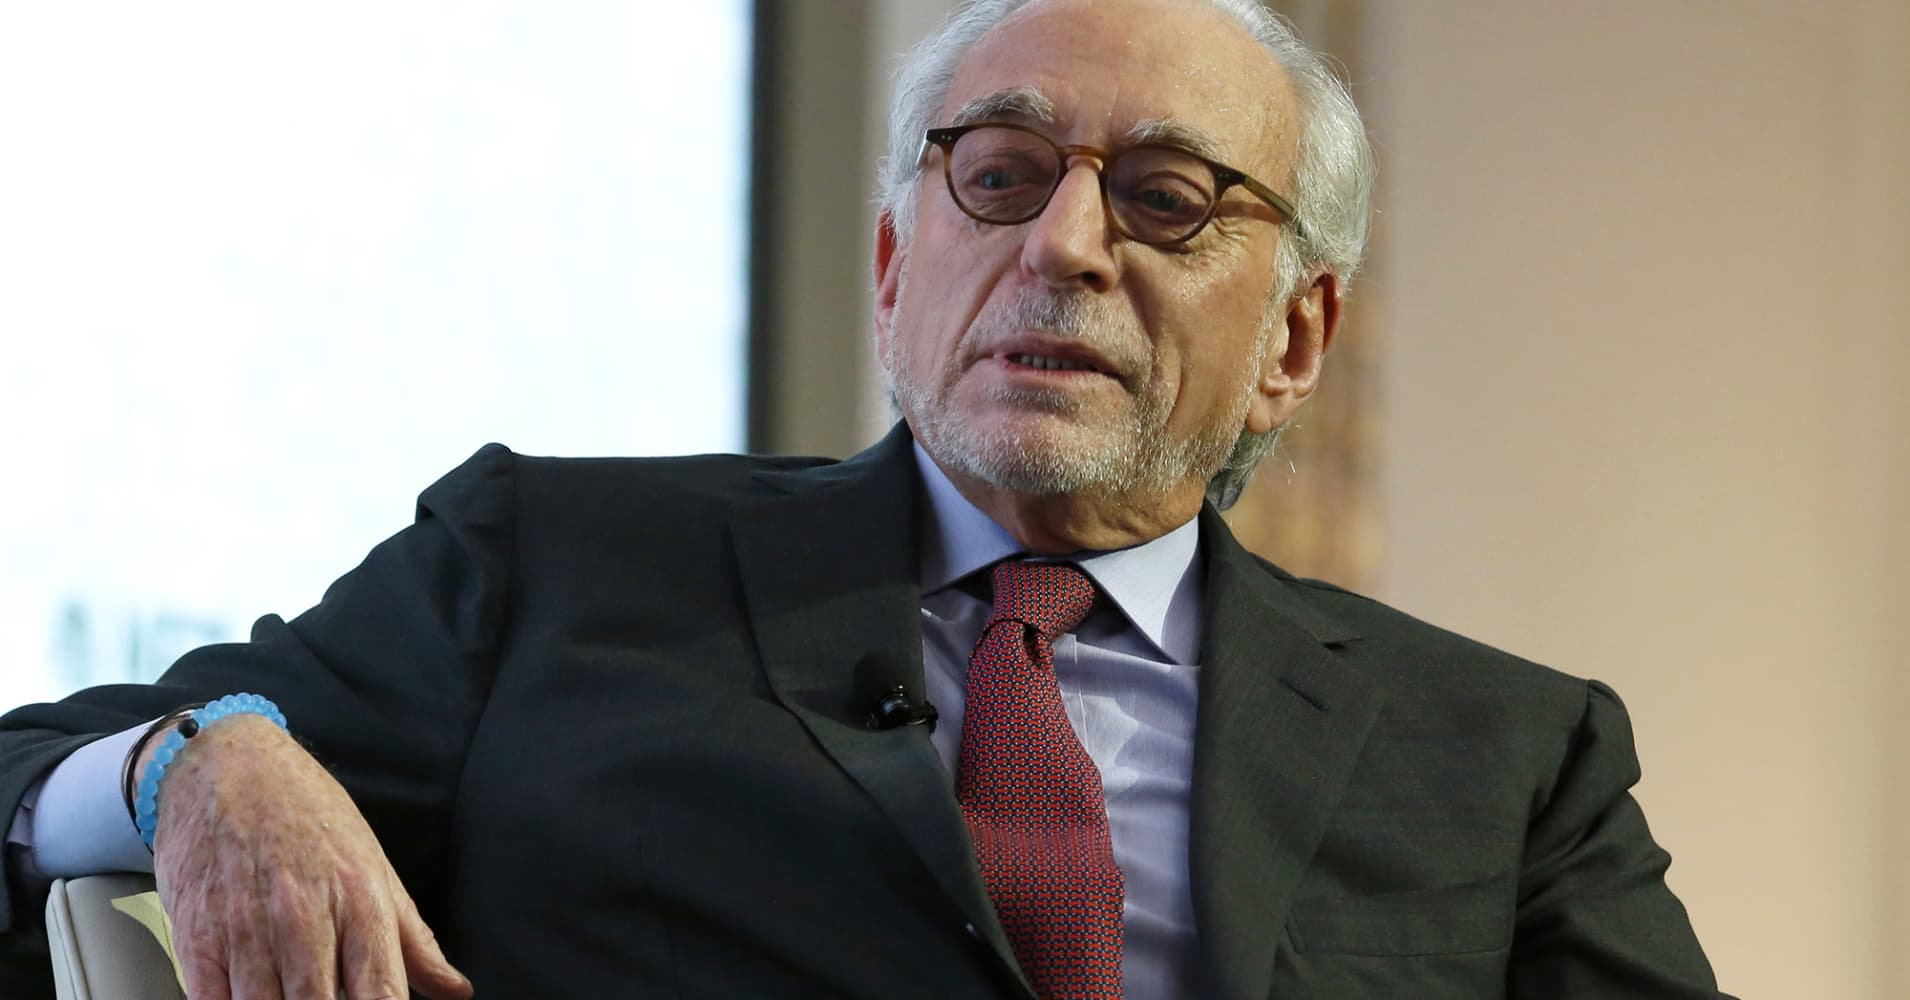 P&G appoints Nelson Peltz to board effective March 2018